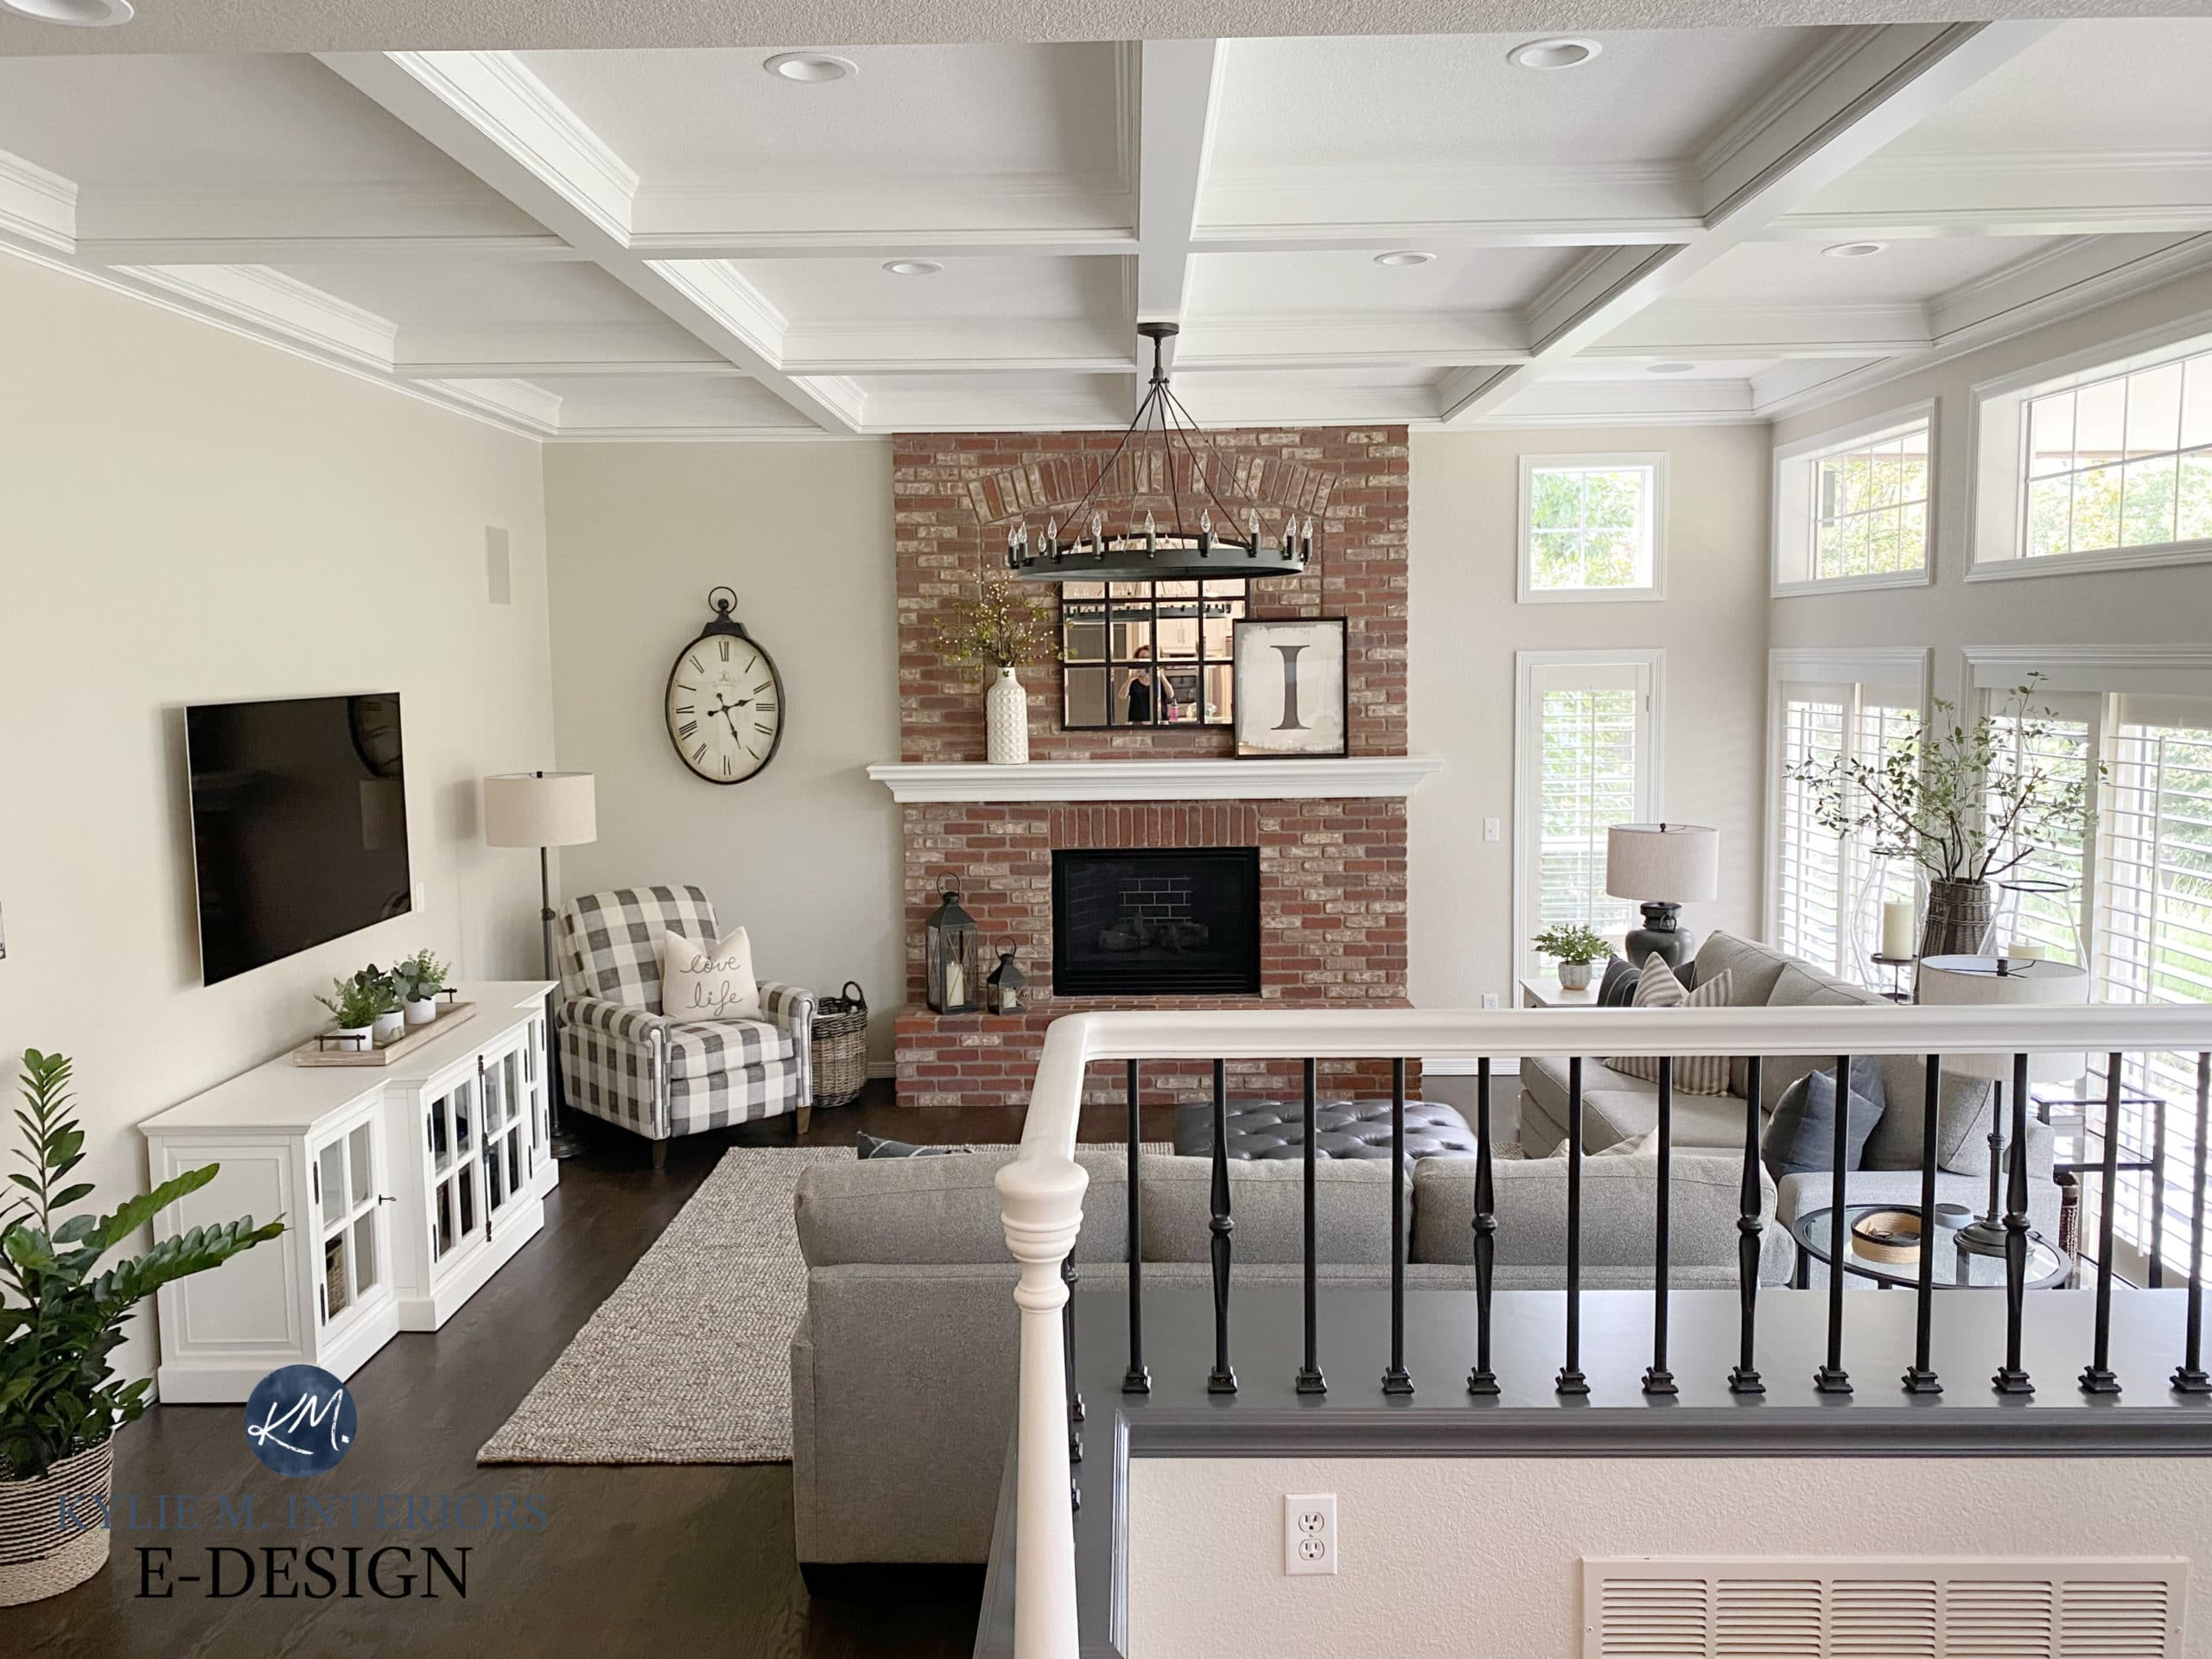 Split-level family room with transitional style home decor and furniture. Red, pink brick fireplace and greige walls, white trim. Kylie M Interiors Edesign. Benjamin Edgecomb, White